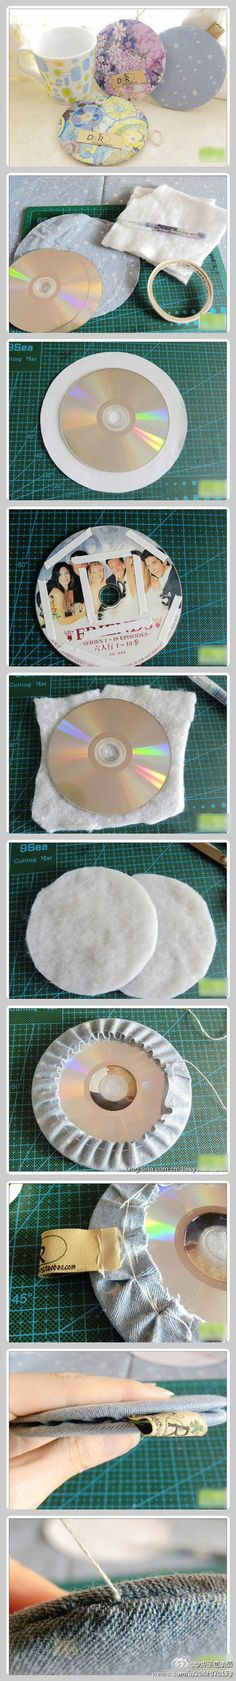 unwanted disc transform to coaster